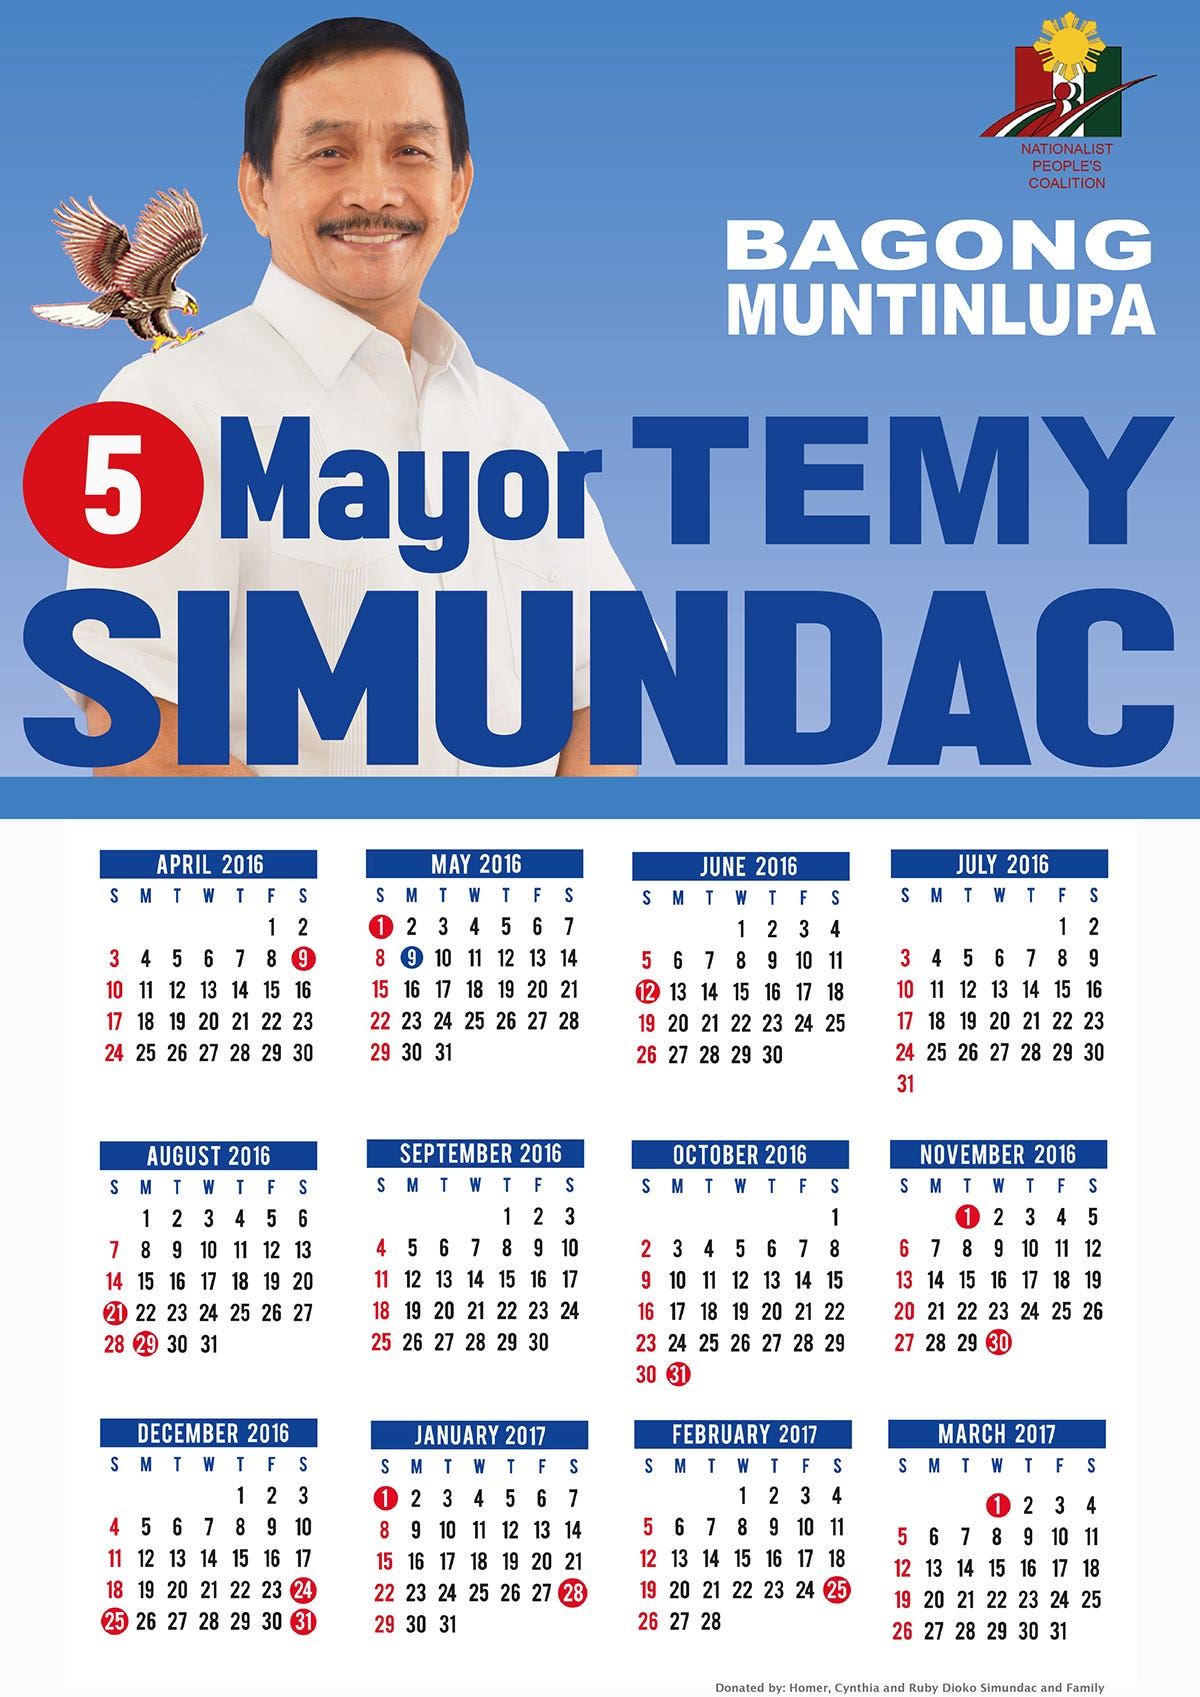 Calendar Layout for Election